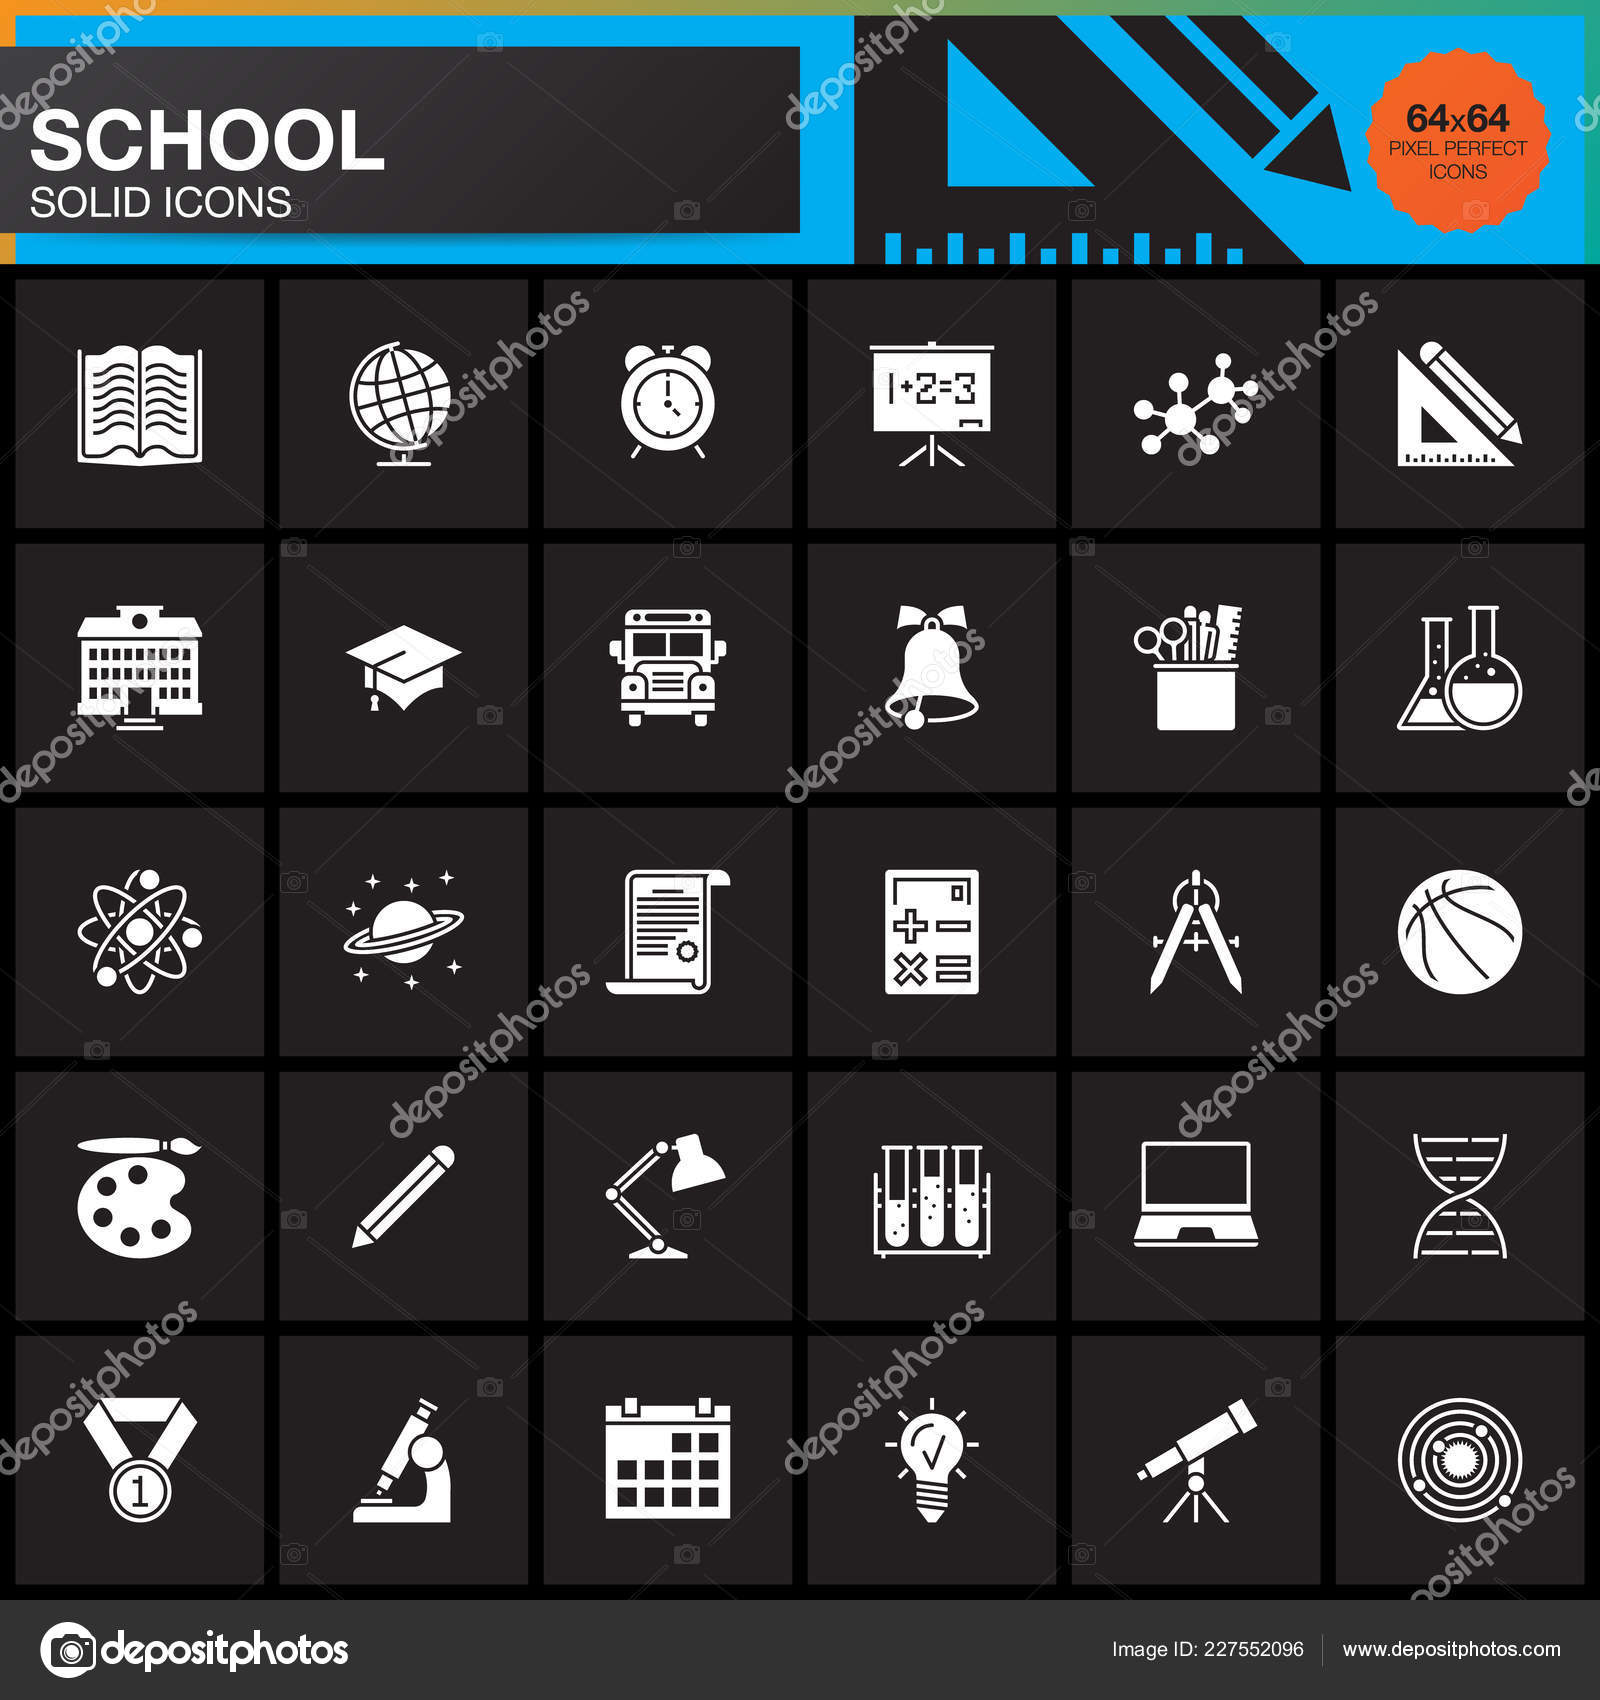 School Vector Icons Set Modern Solid Symbol Collection